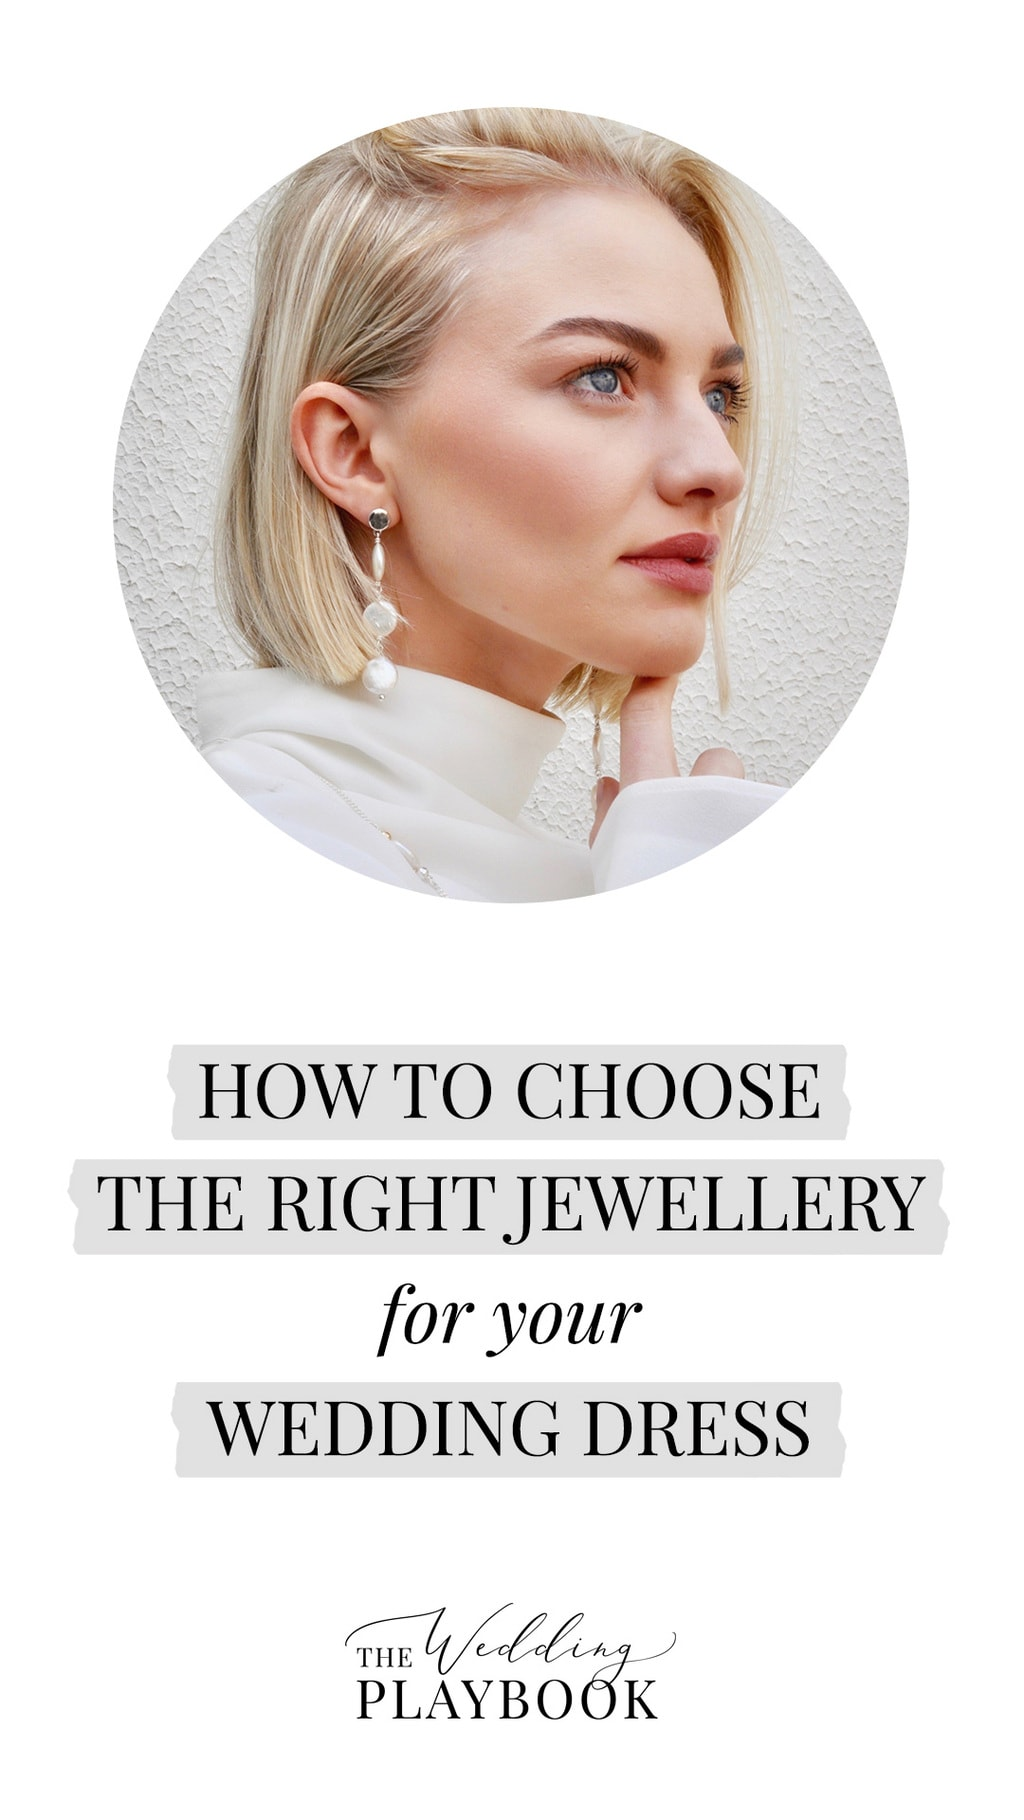 How to Choose the Right Jewellery for Your Wedding Dress with Leoni & Vonk